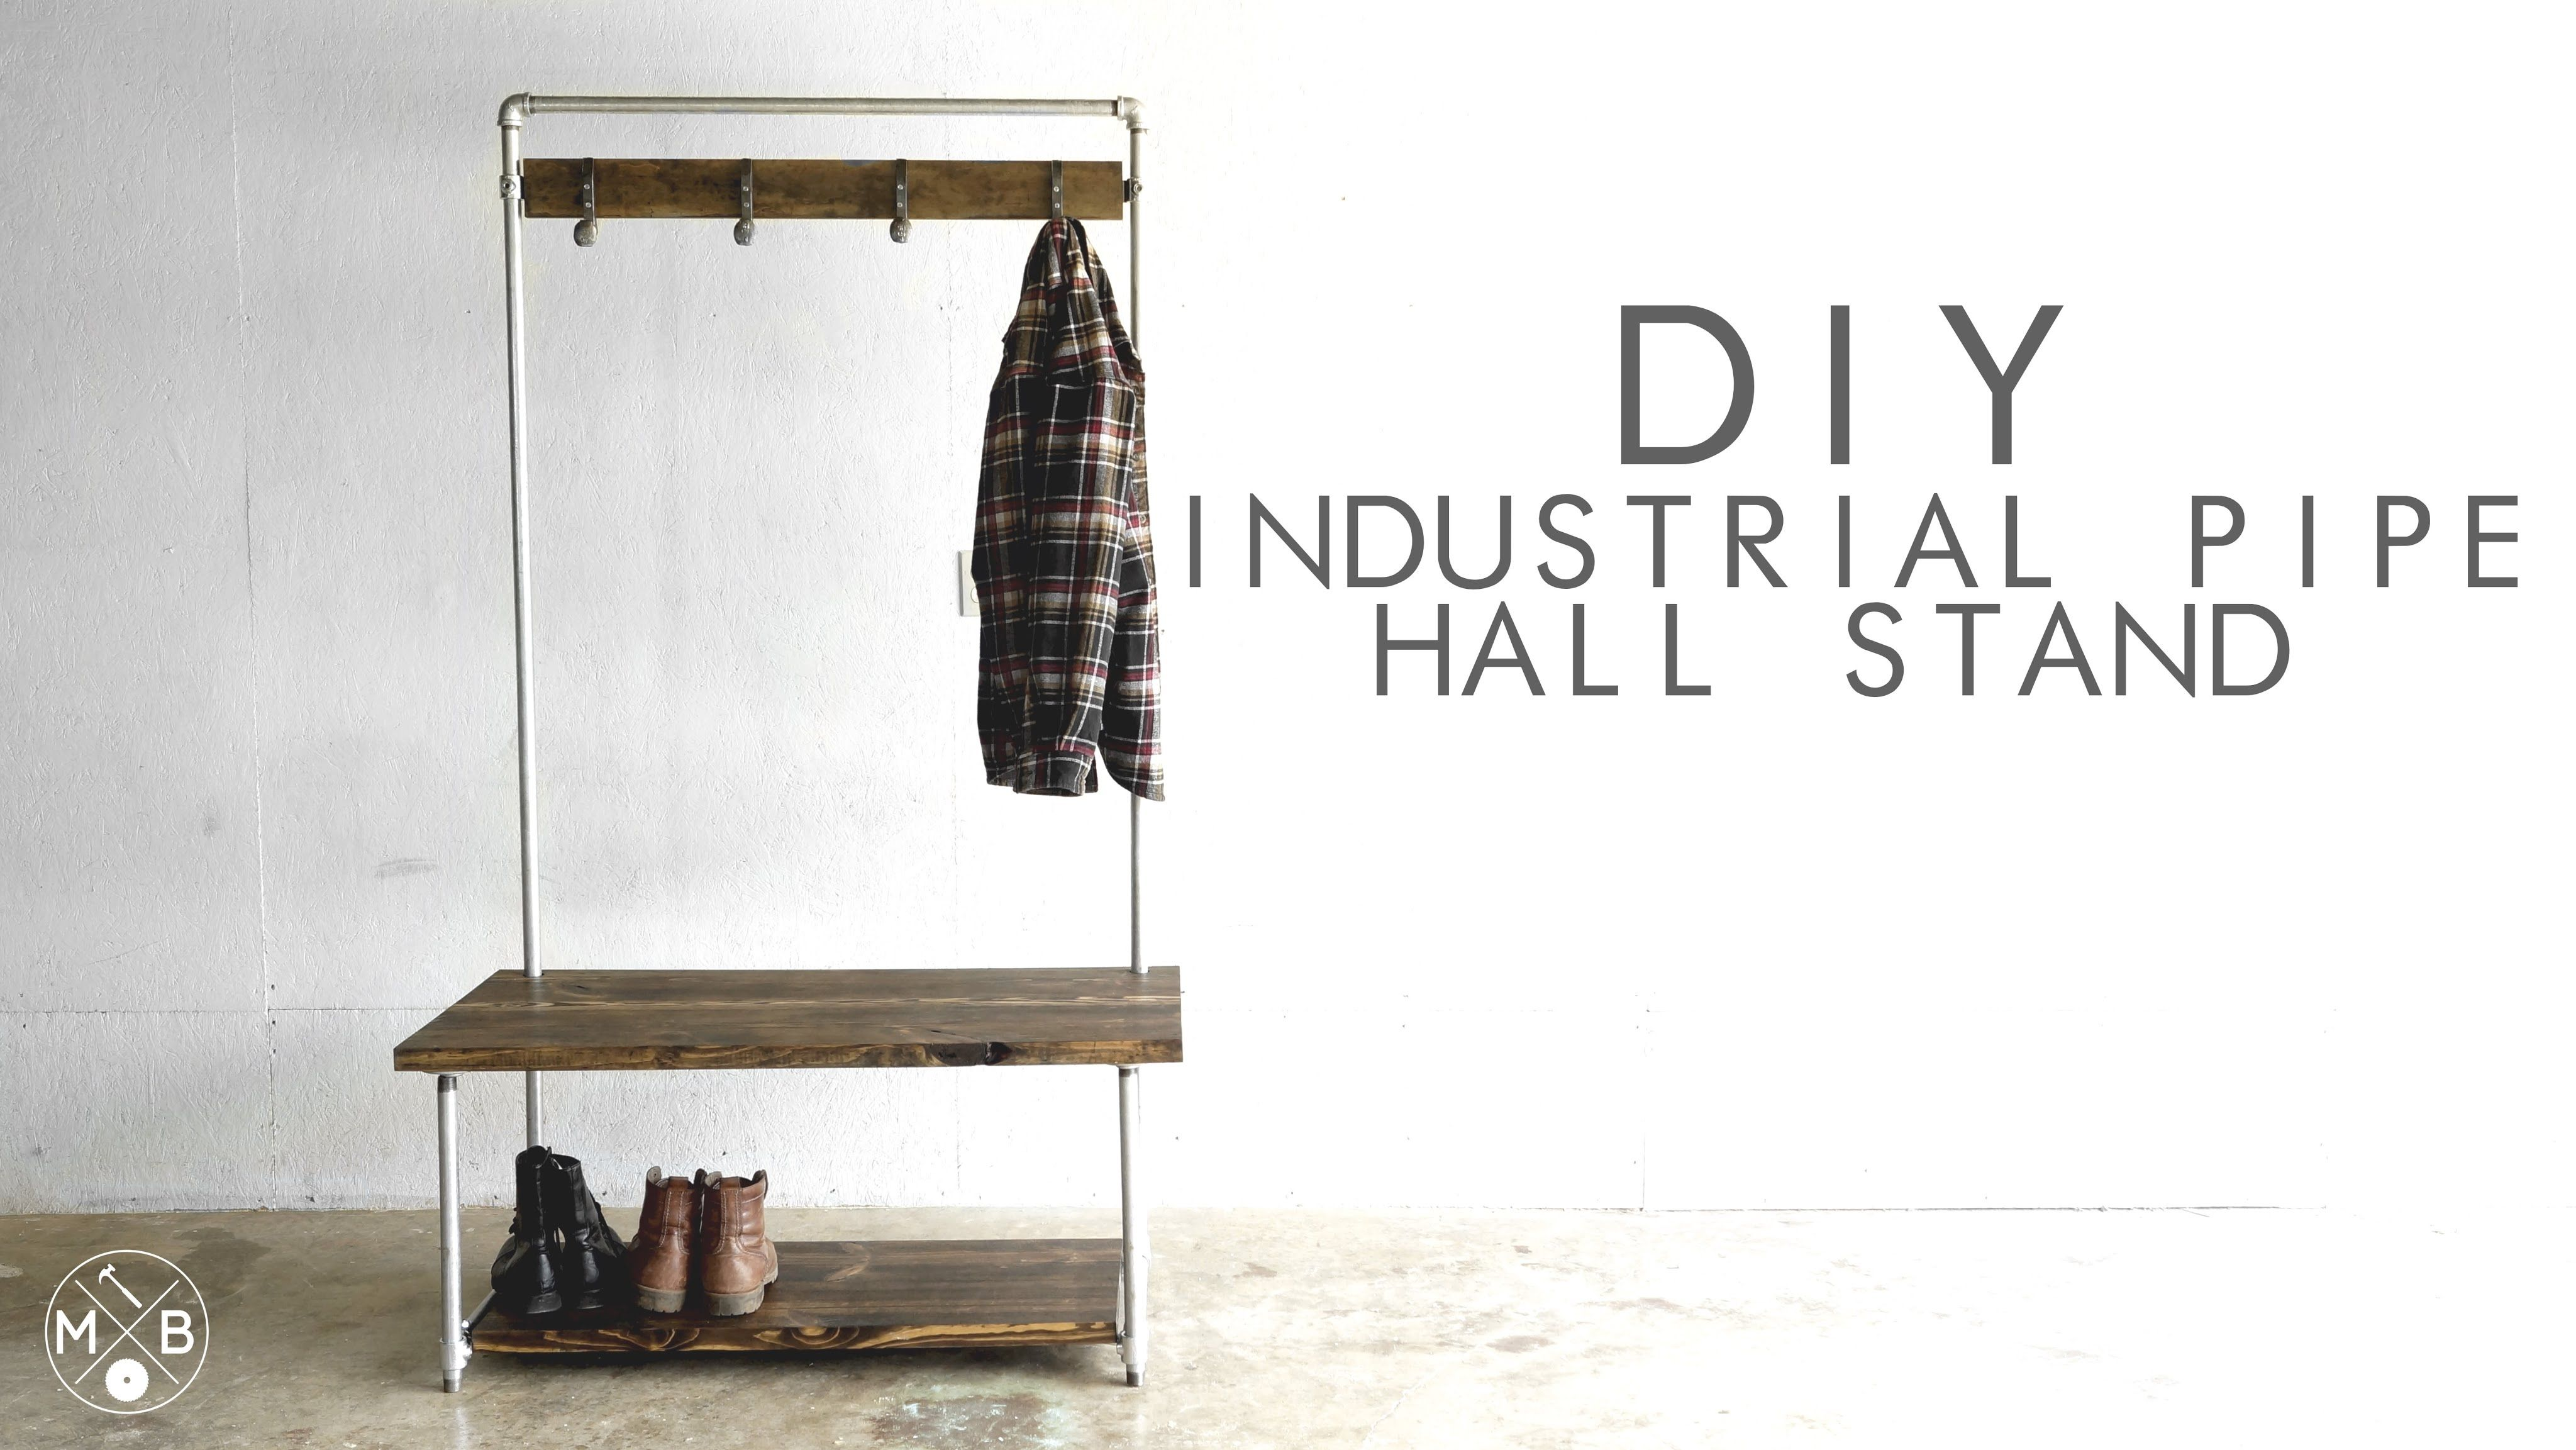 DIY Industrial Pipe Hall Stand